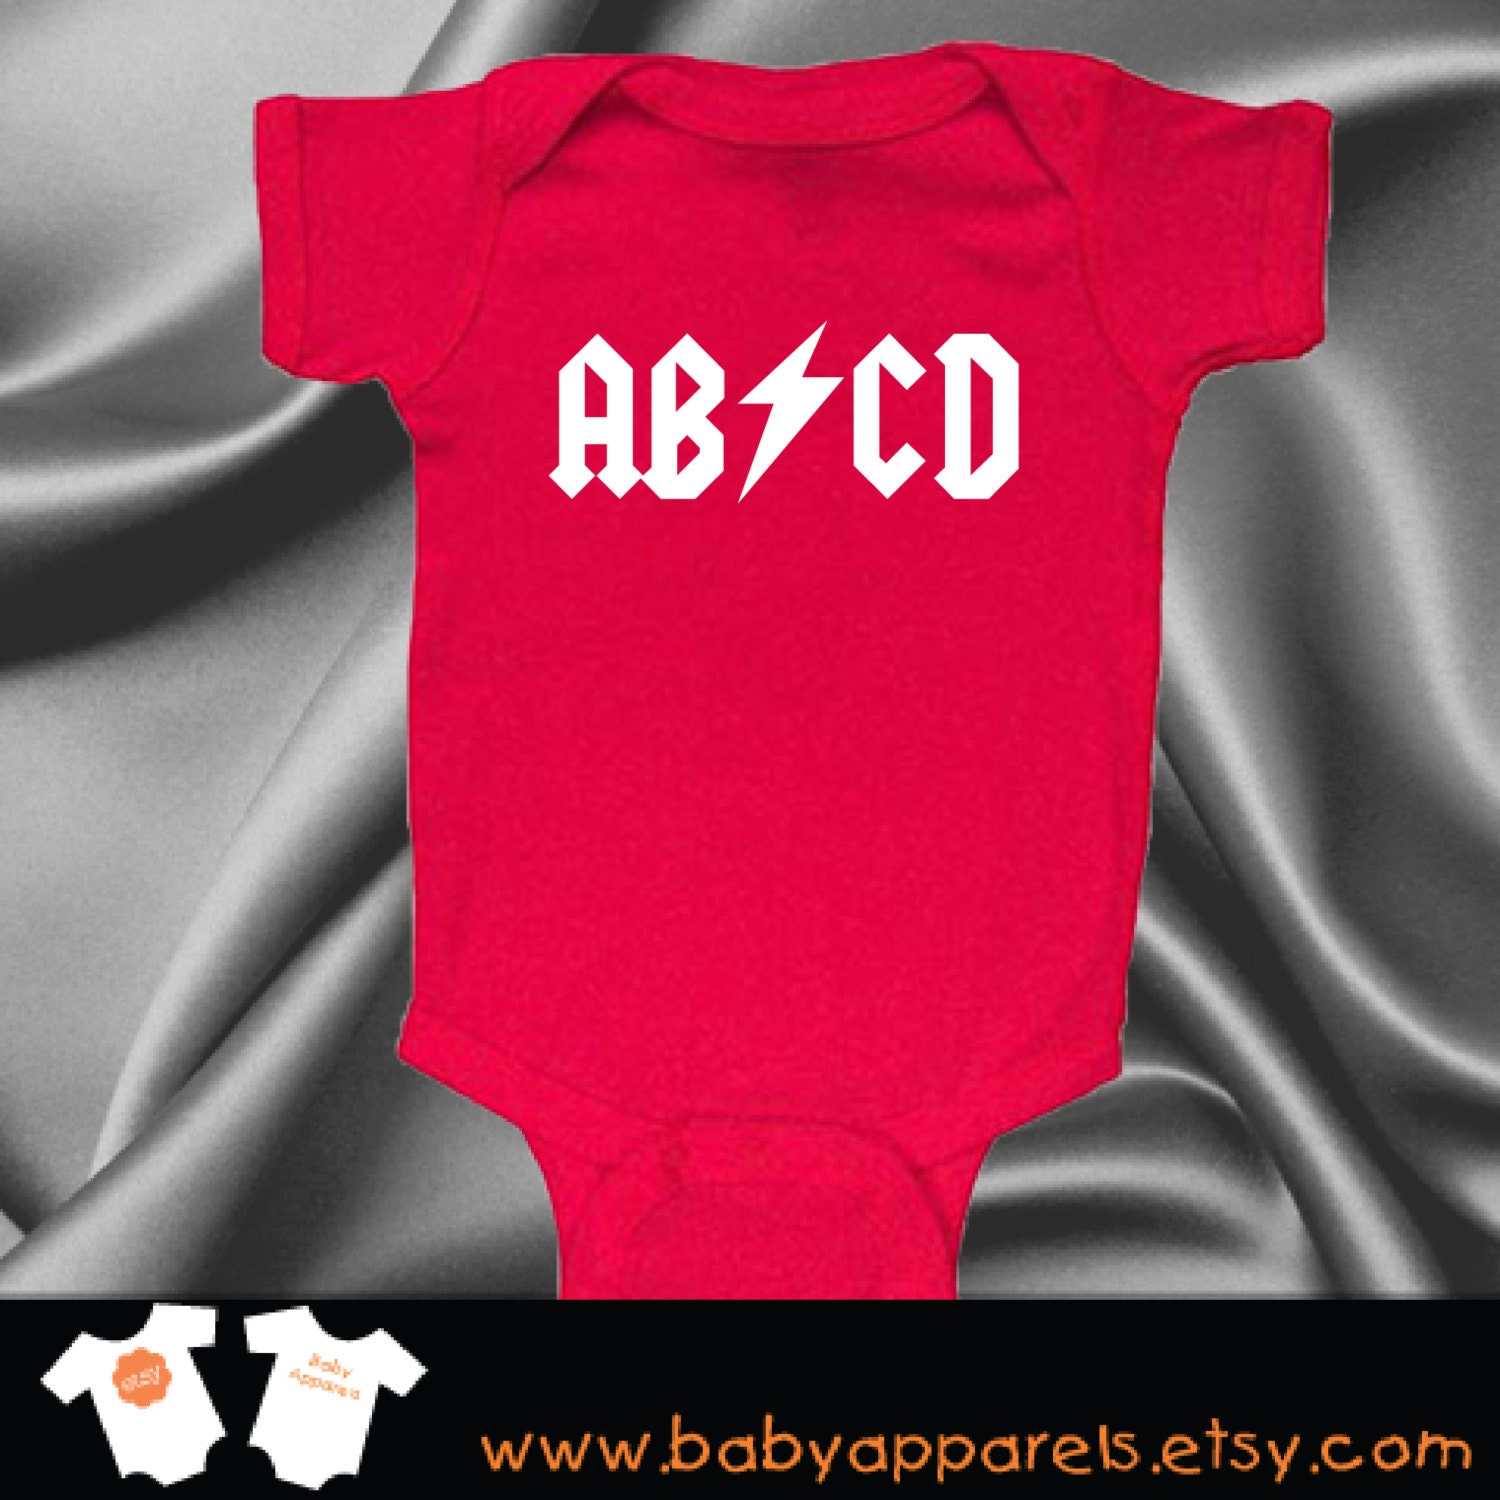 ABCD ACDC Rock Band baby Clothes Funny Baby Clothes